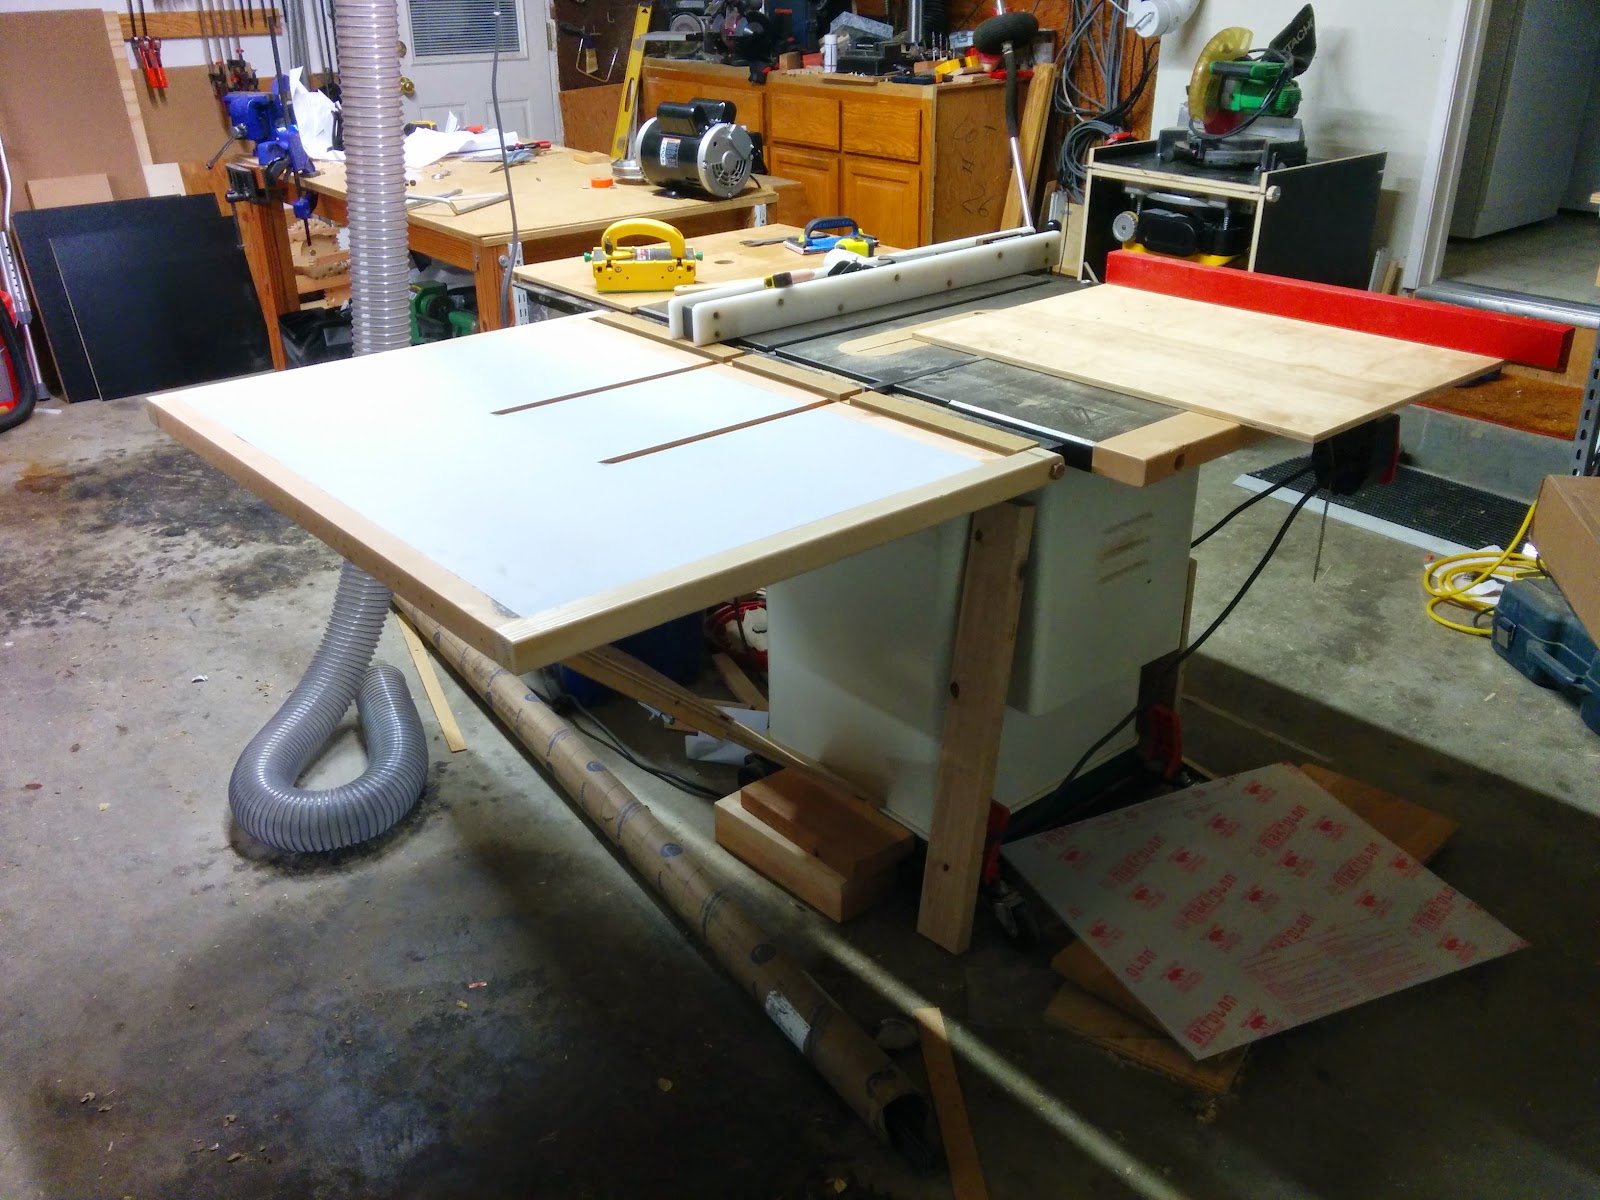 Groovy Table Saw Outfeed Table Experience Improve Make Home Interior And Landscaping Transignezvosmurscom